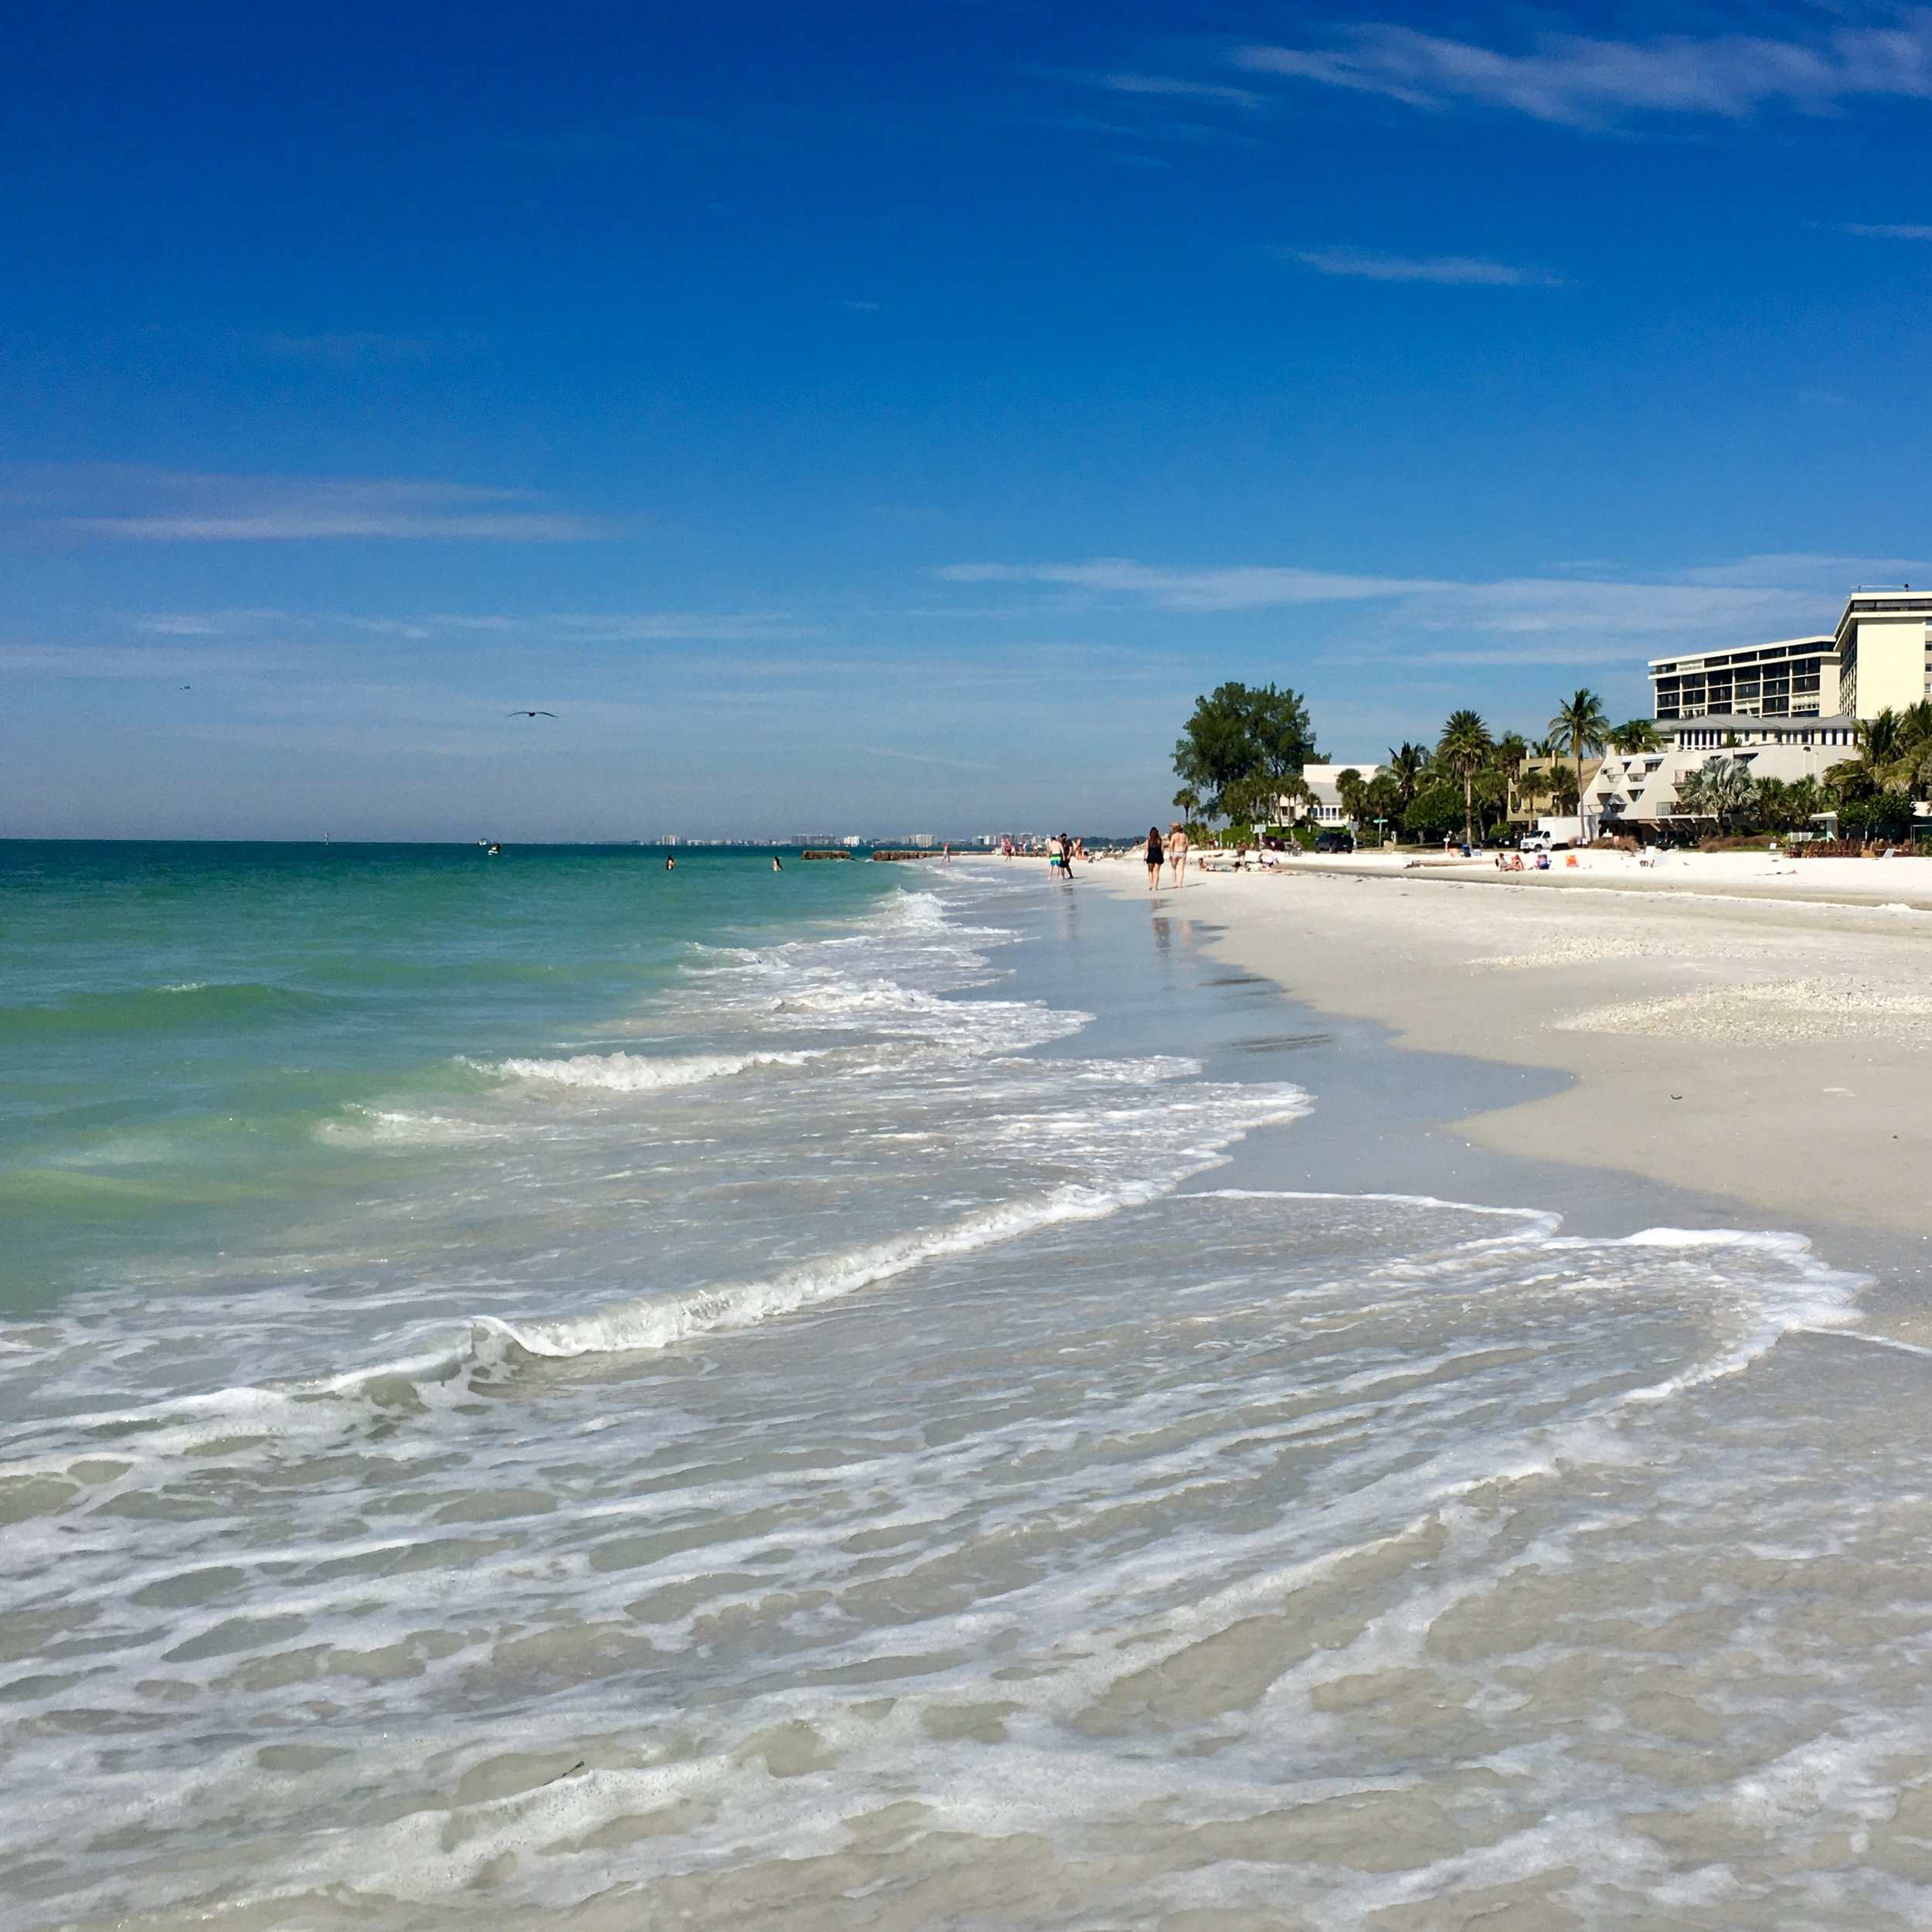 There is something overwhelmingly joyful about being close to the ocean. This is the Gulf off Siesta Key in Florida.